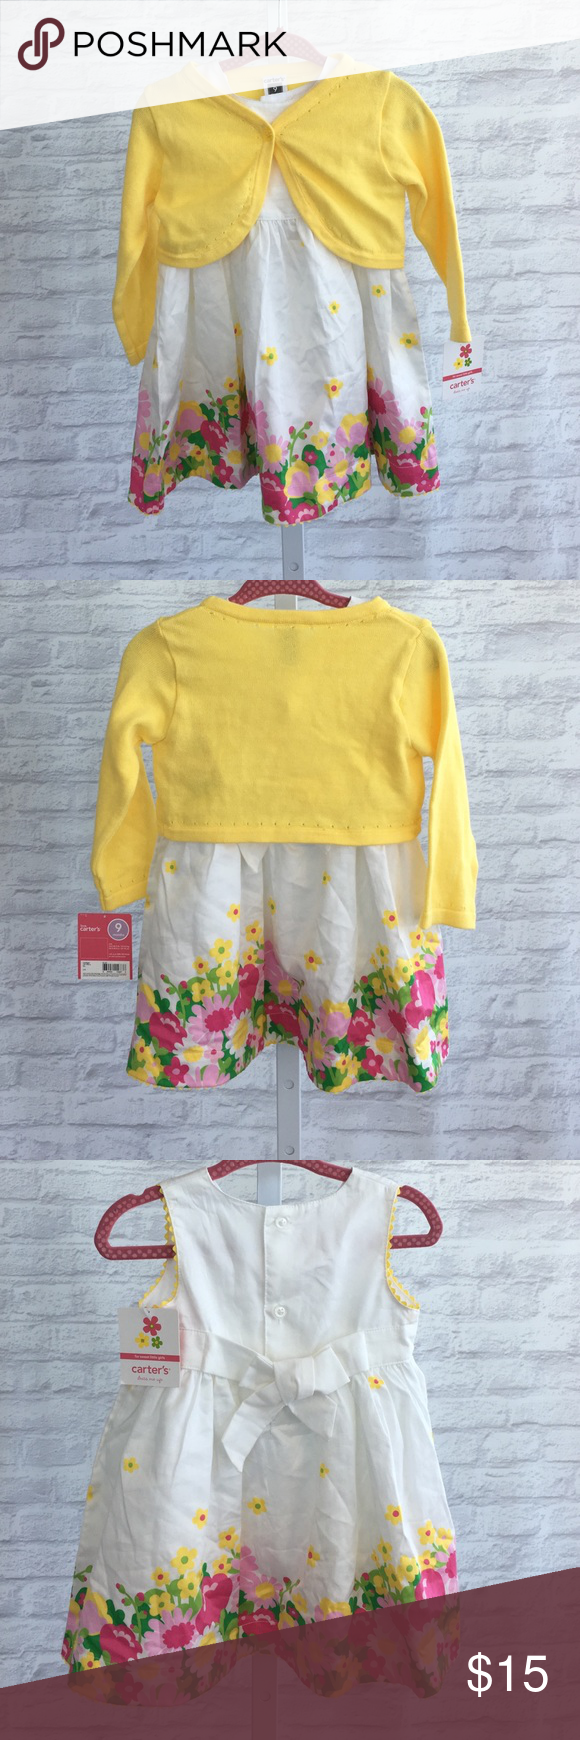 Floral dress with yellow sweater set NWT | Yellow, Yellow sweater ...